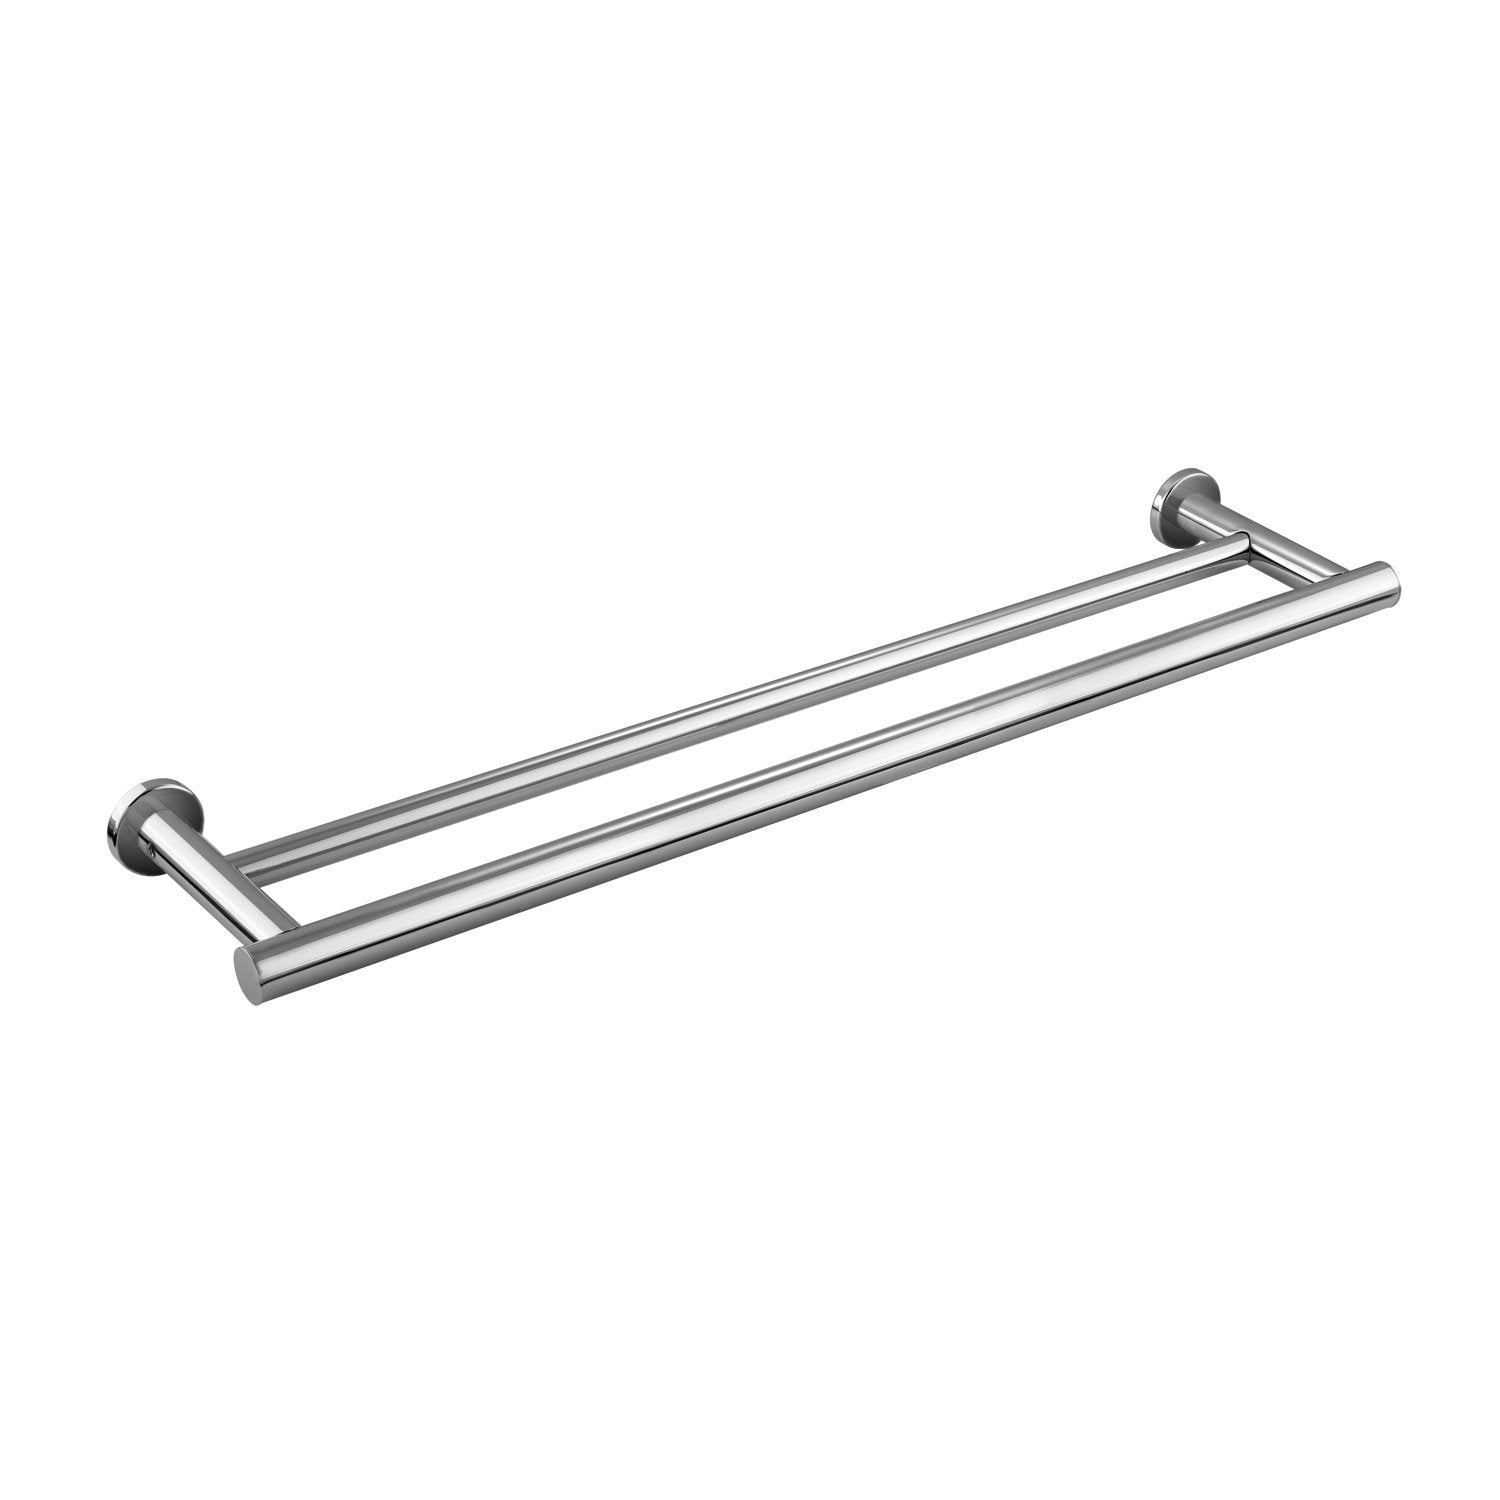 COSMIC Architect Double Towel Bar, Wall Mount, Brass Body, Chrome Finish, 23-1/6 x 1-9/16 x 5-1/8 Inches (2050161)